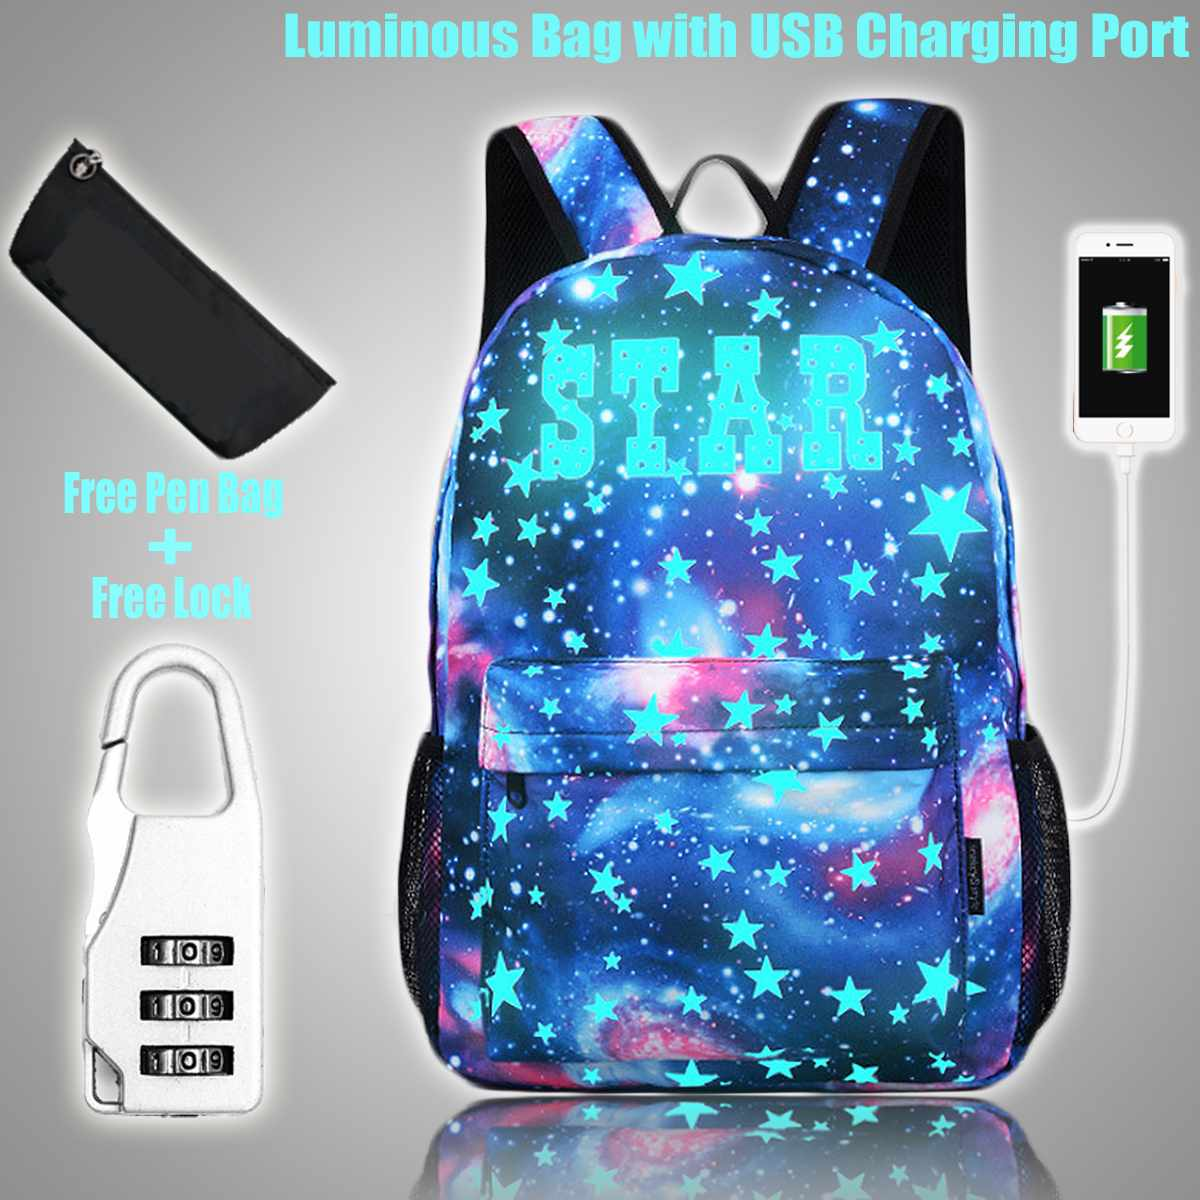 Luminous Anti-theft Student School Bag Backpack For Boy Girl Daypack With USB Charging Port Anti-theft Lock For Outdoor Camping